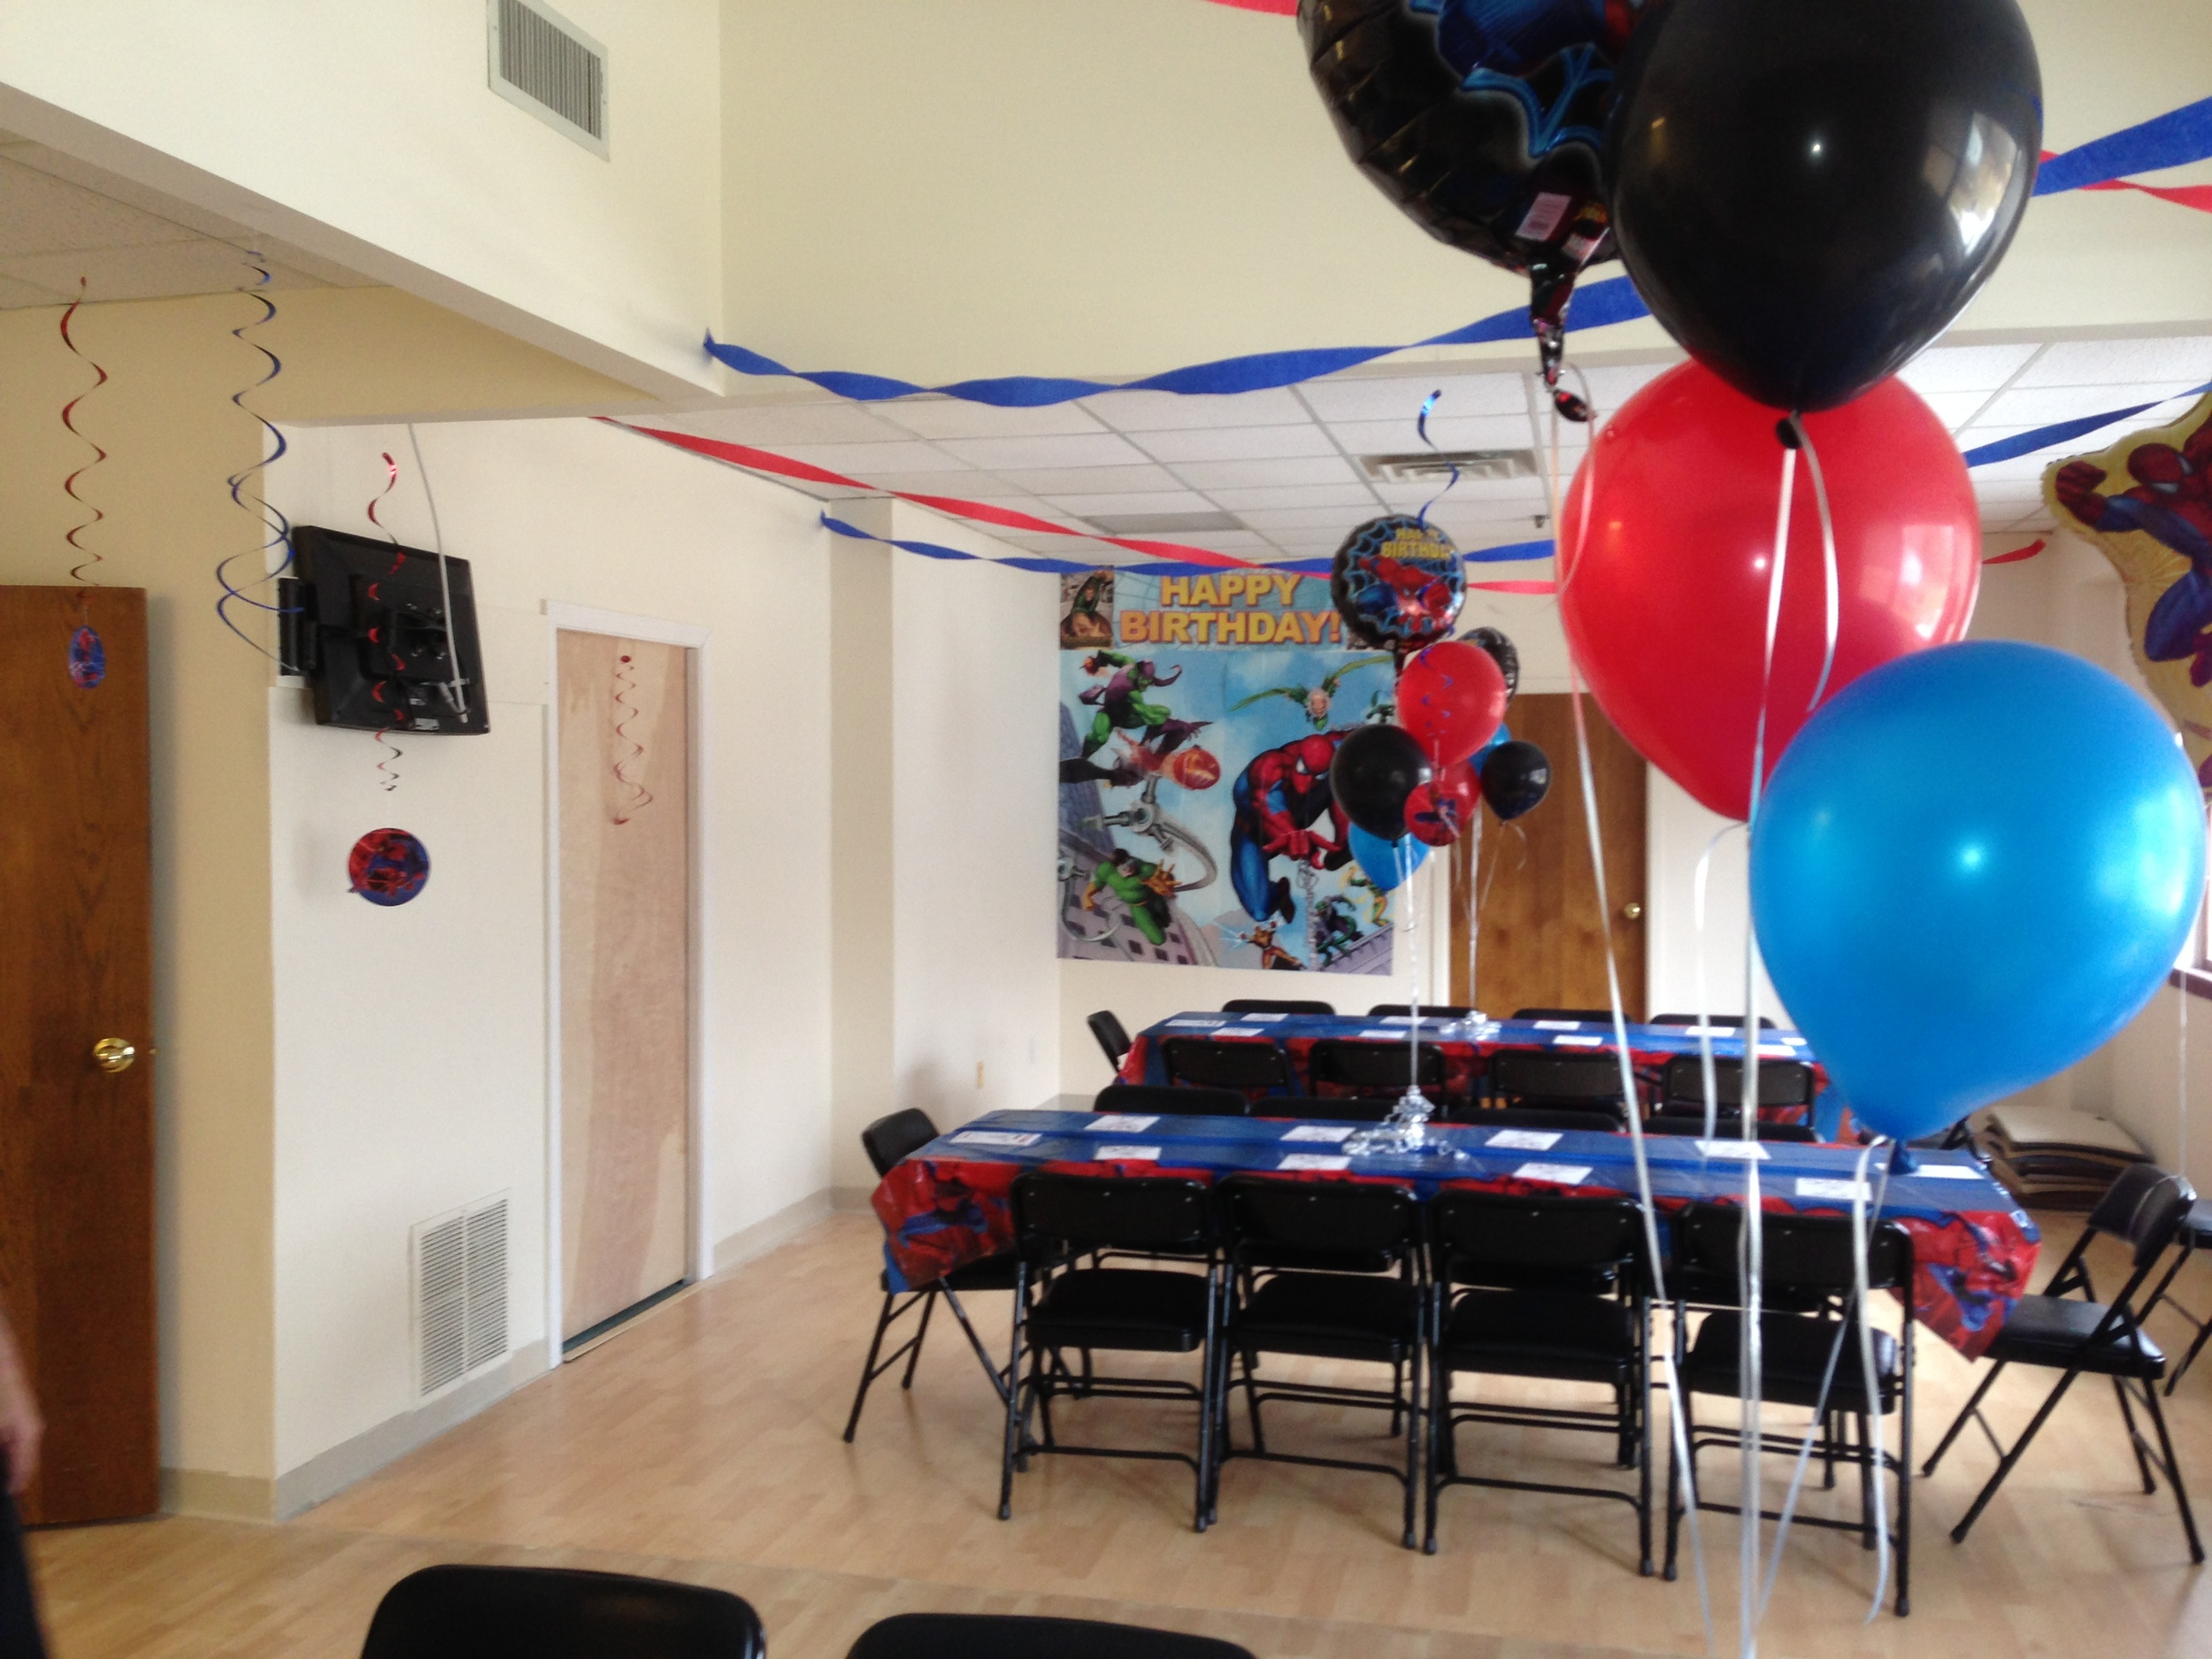 Our Cabaret Room decorated for a Spiderman Party.